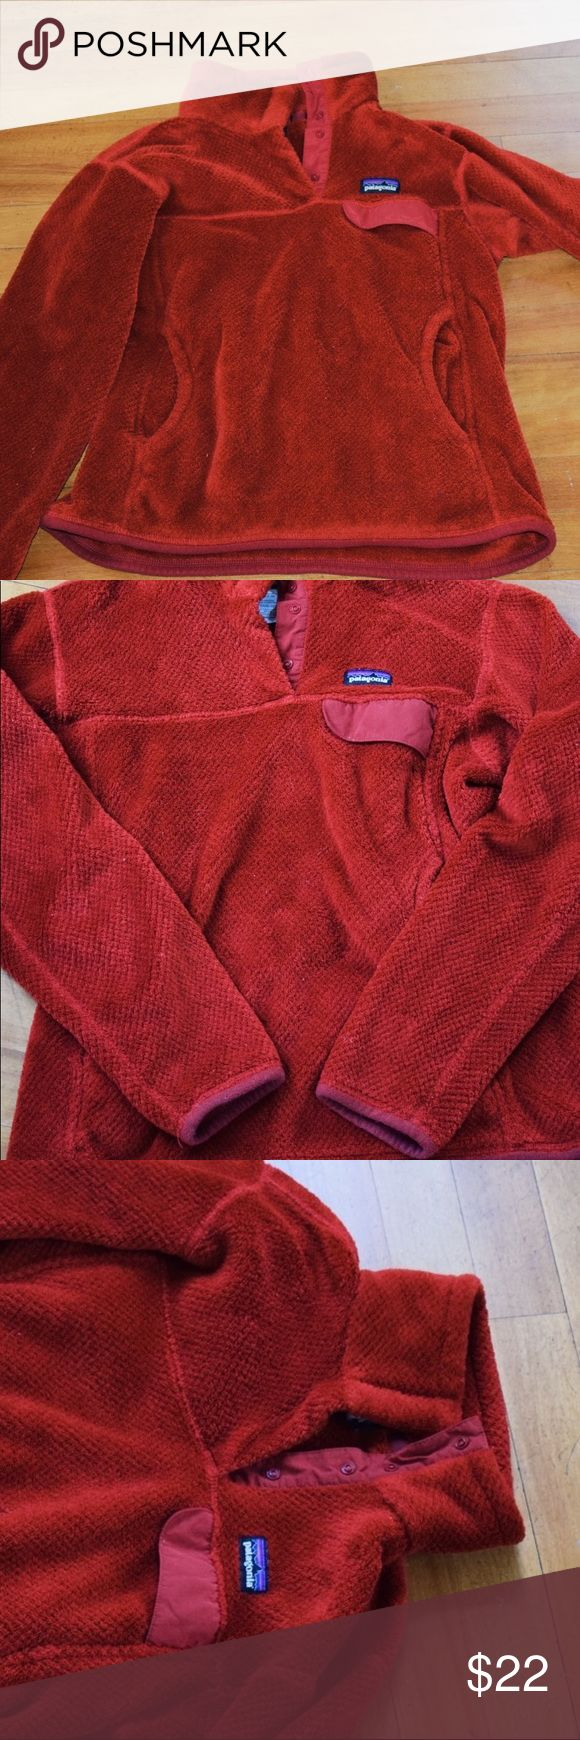 Patagonia Snap-Up Fleece Pullover Great condition with a front pocket and snap up collar. The color is a tomato-red. Very soft and warm!! 💫 Patagonia Jackets & Coats